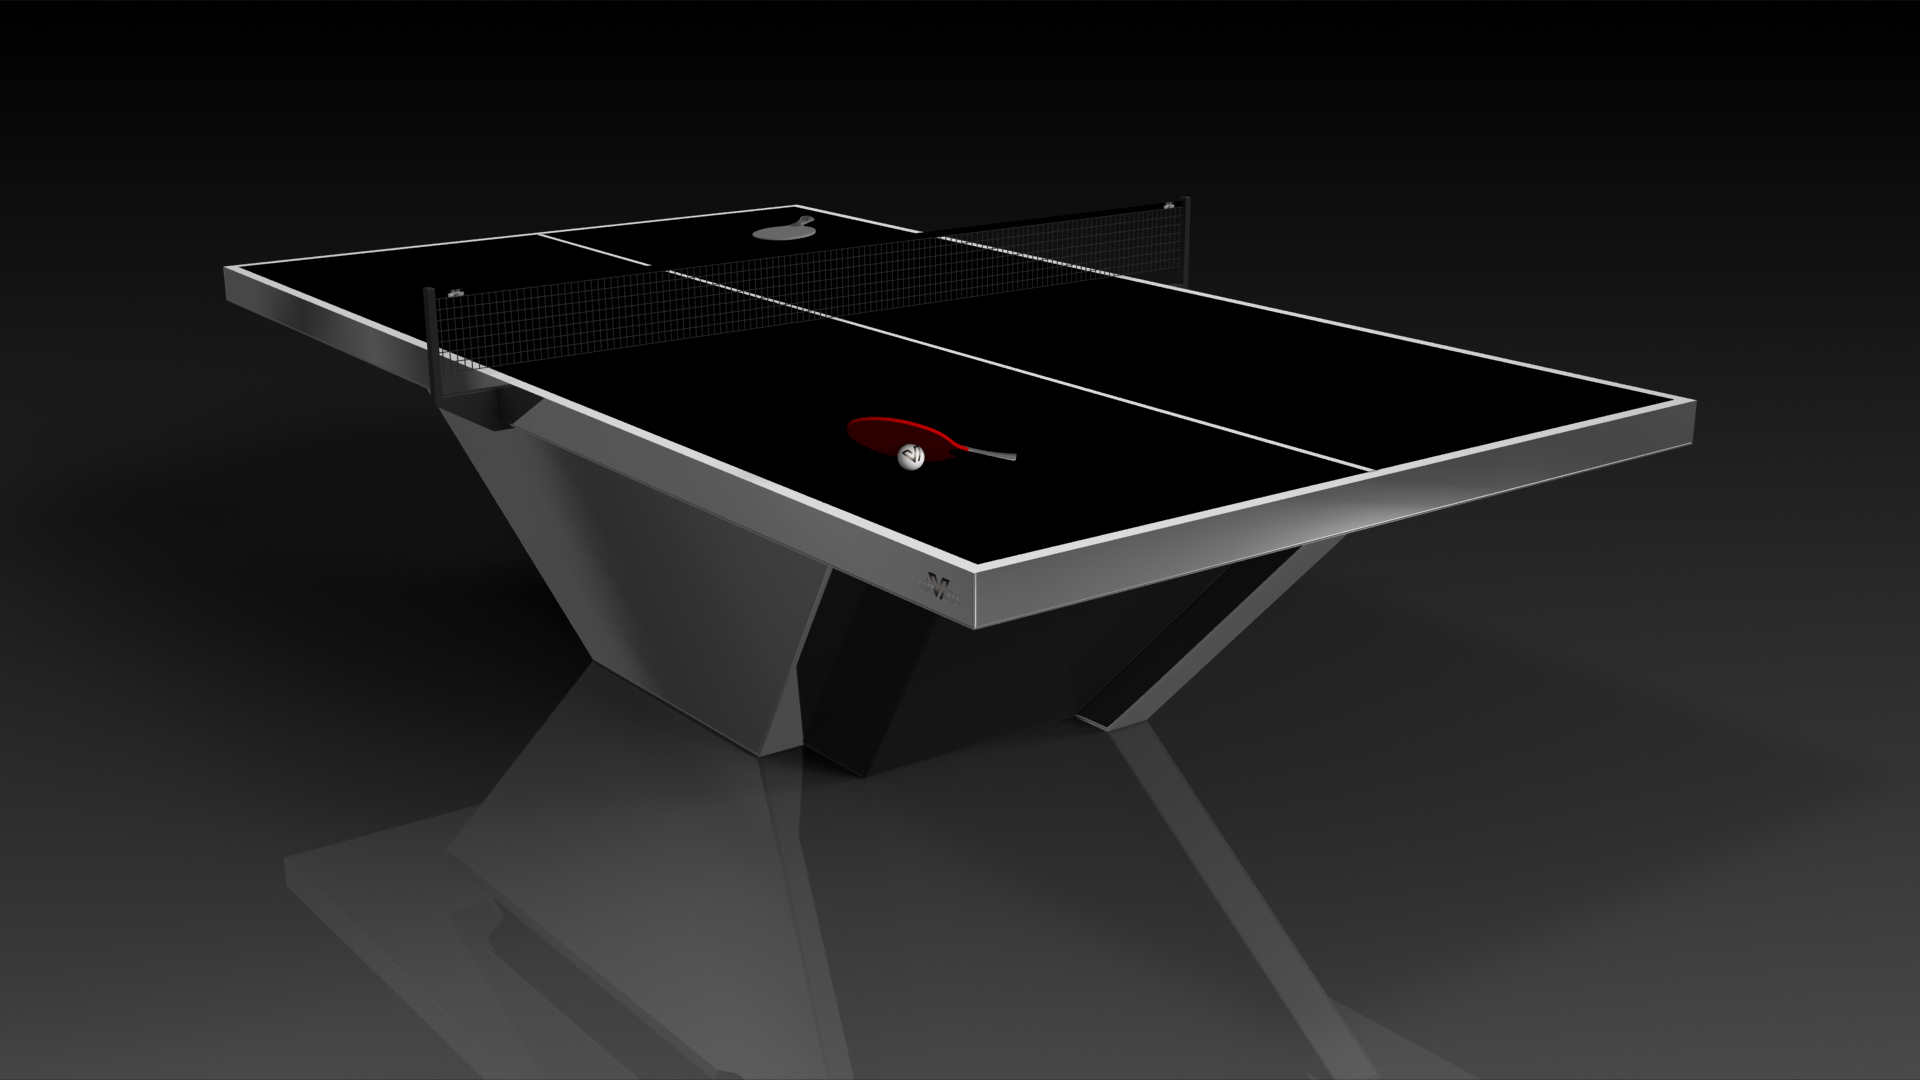 Vogue Chrome Table Tennis